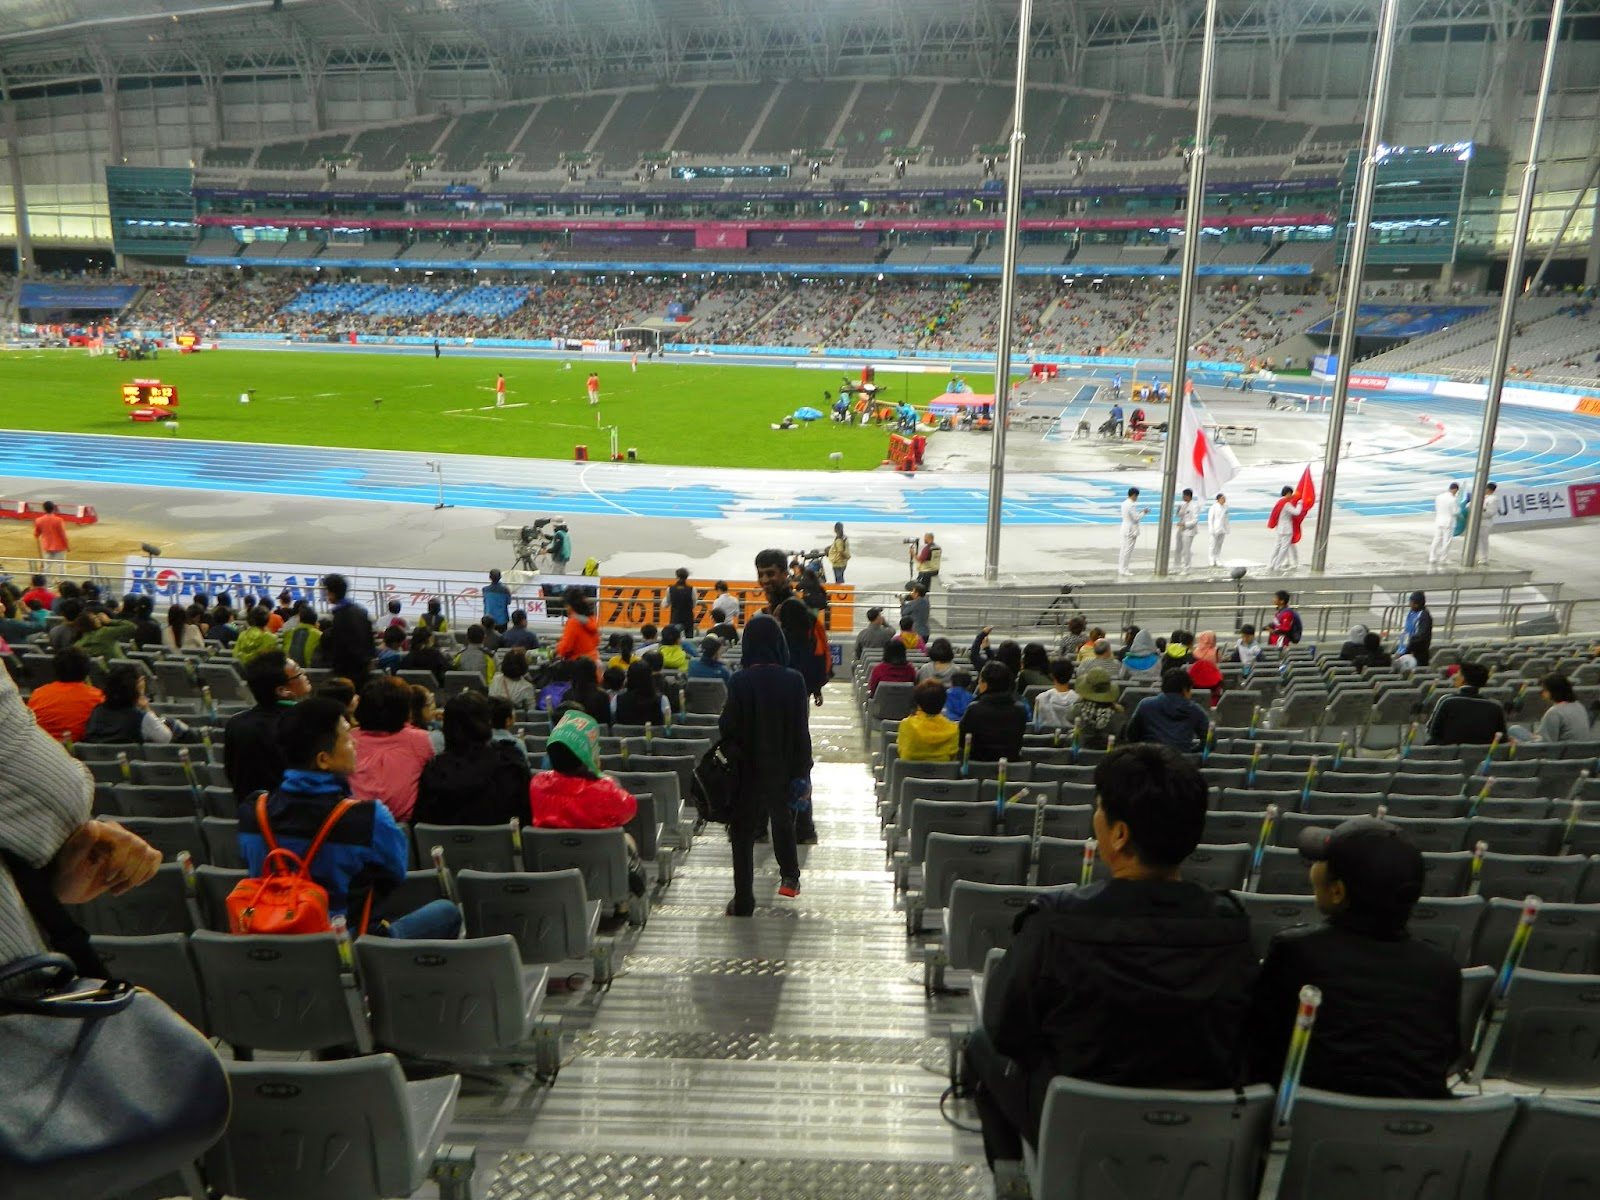 Track and field events in Incheon